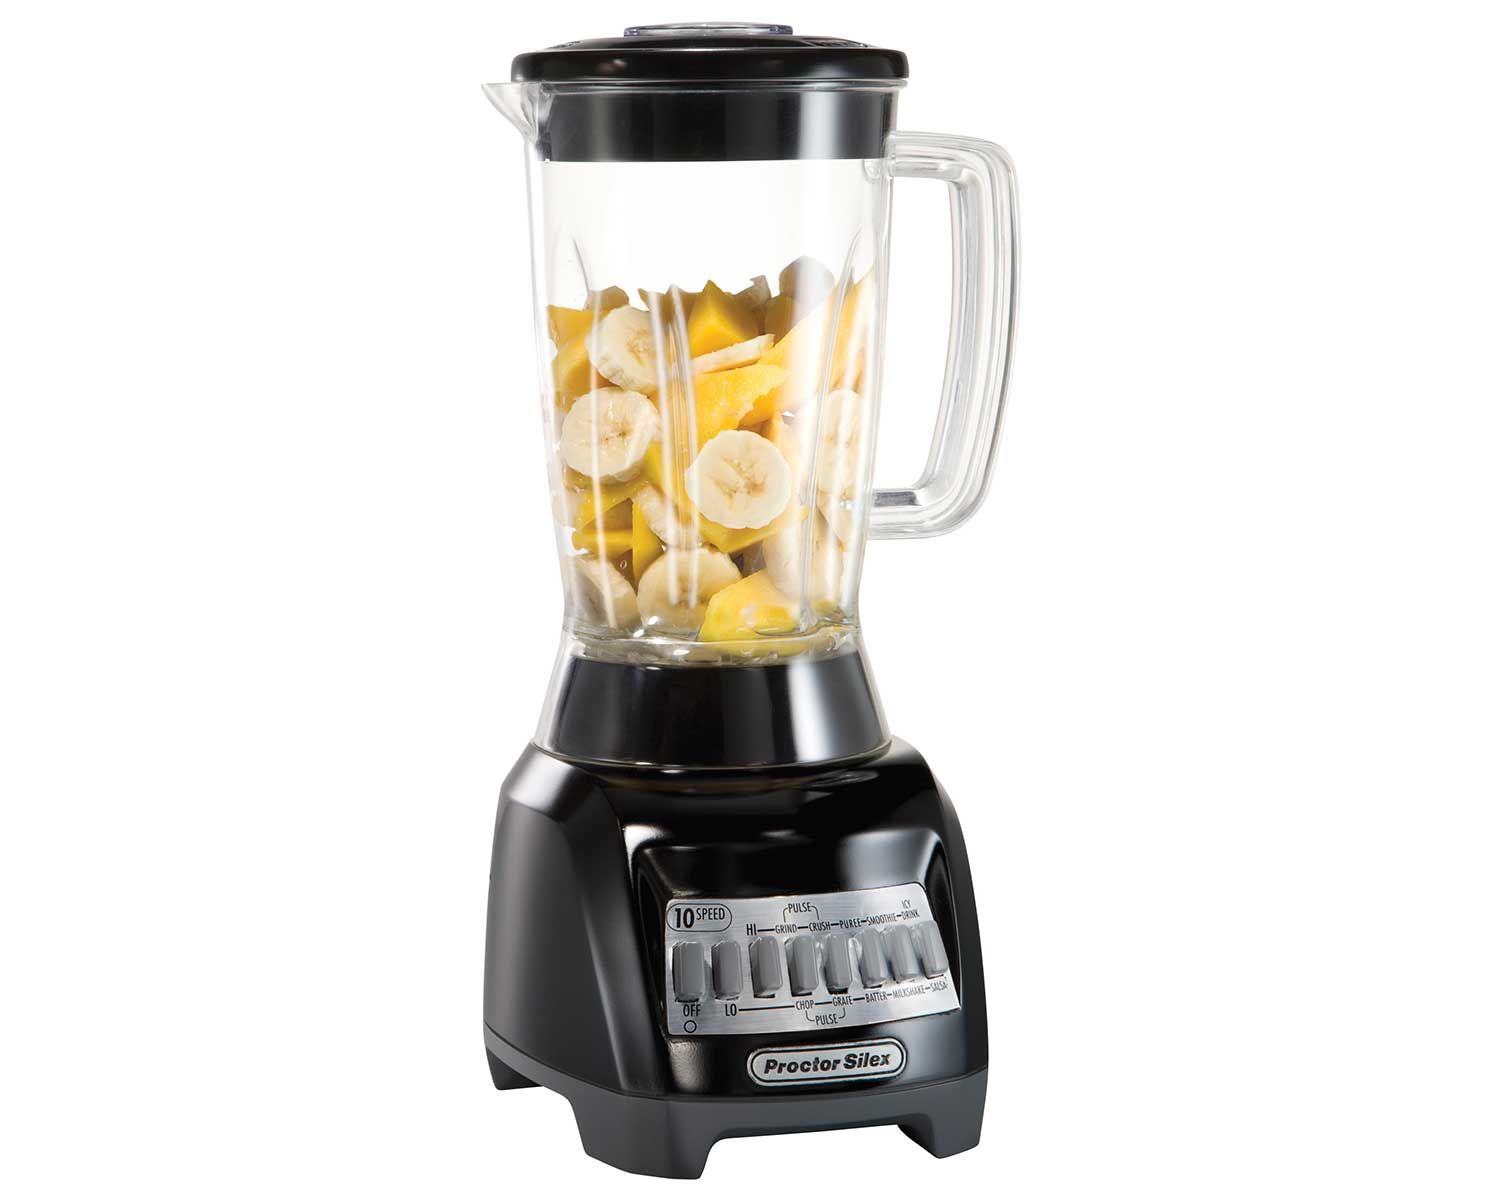 10 Speed Blender (black)-50127